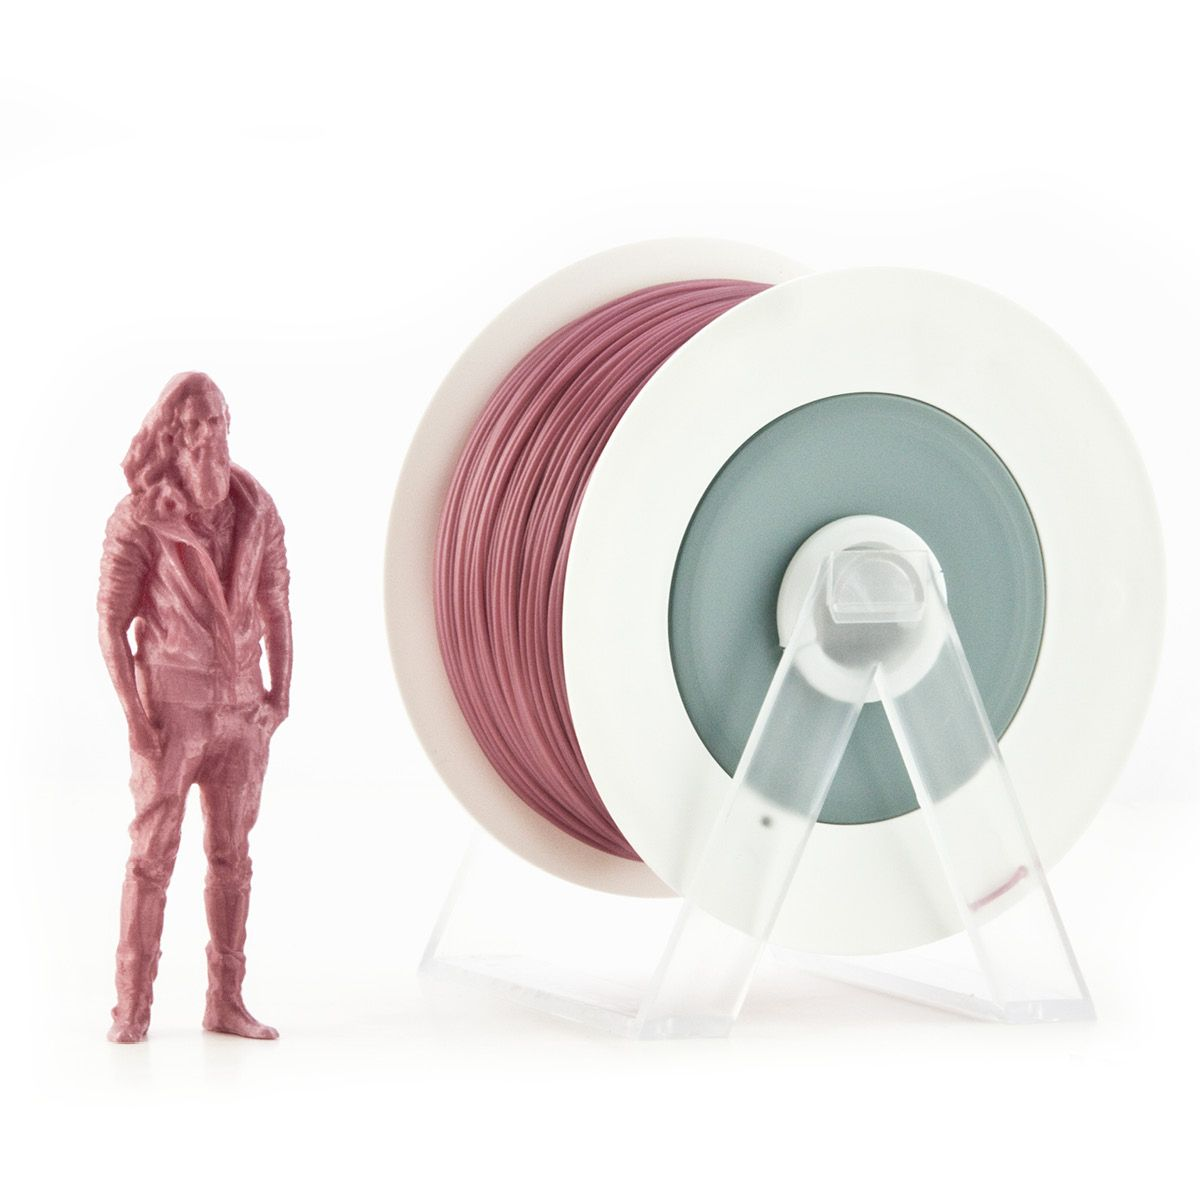 PLA Filament | Color: Metallic Dark Antique Pink